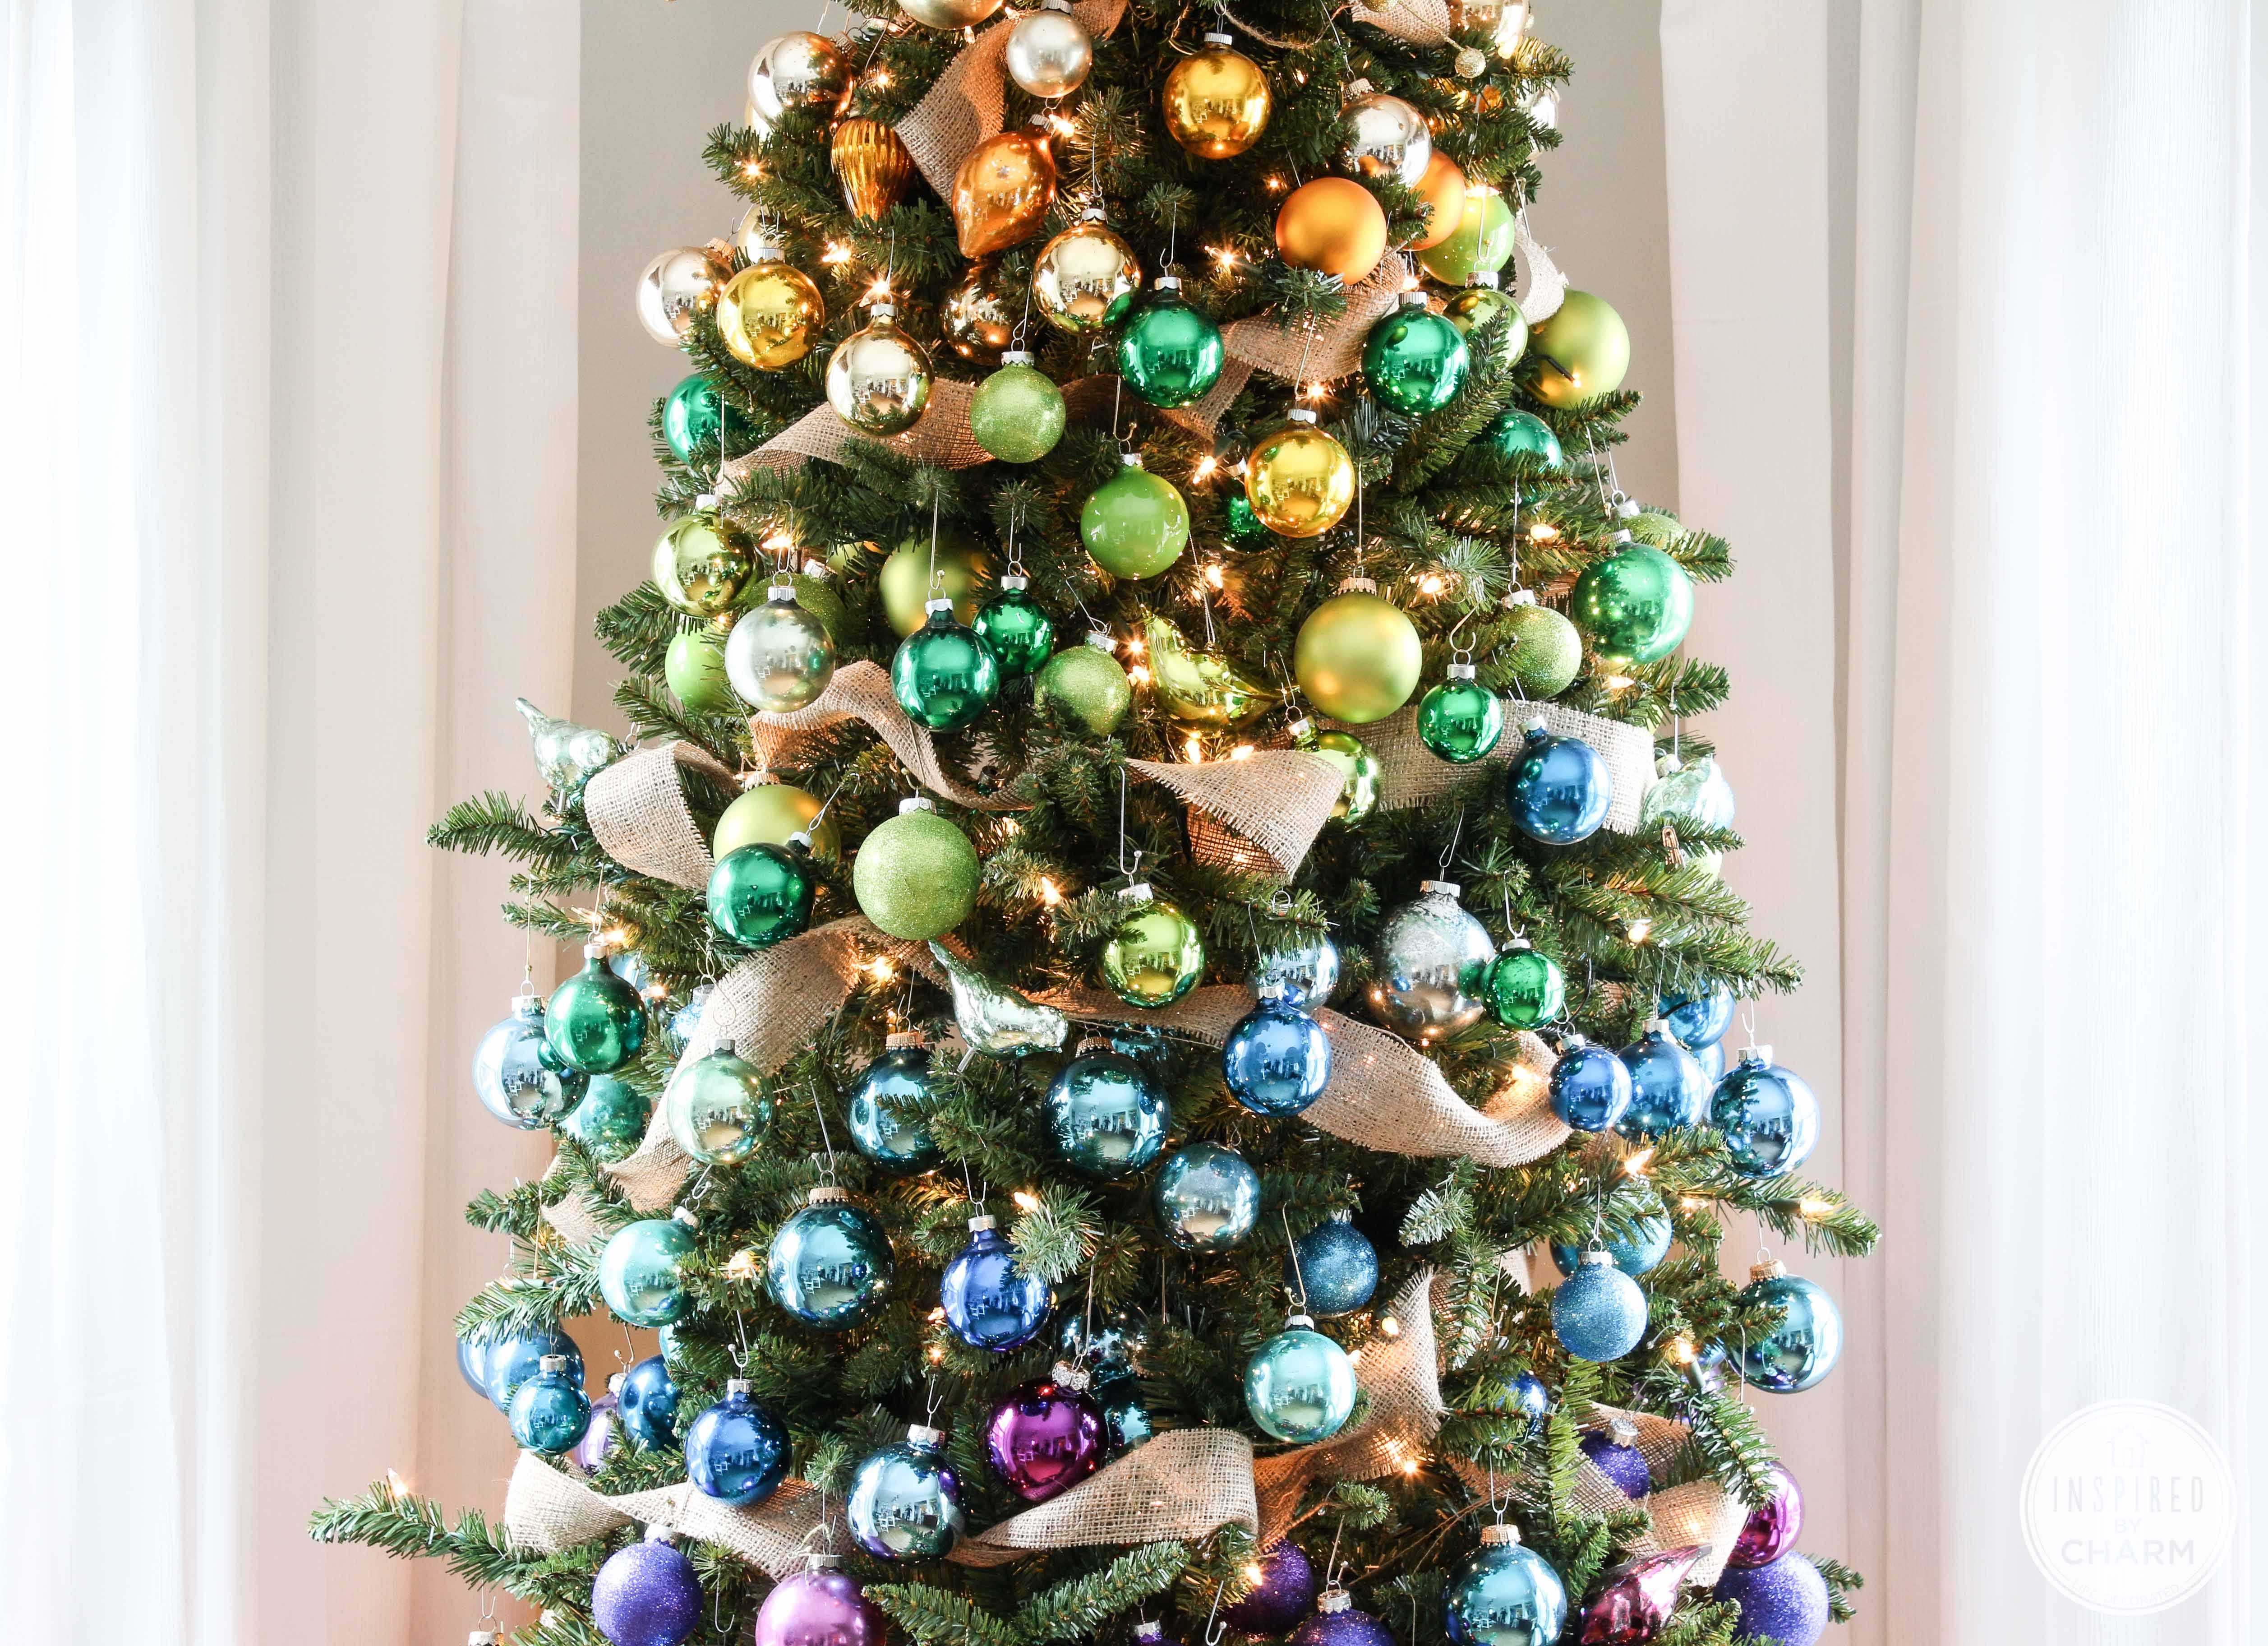 50 christmas tree decoration ideas pictures of beautiful christmasBeautiful Decorations Christmas #8